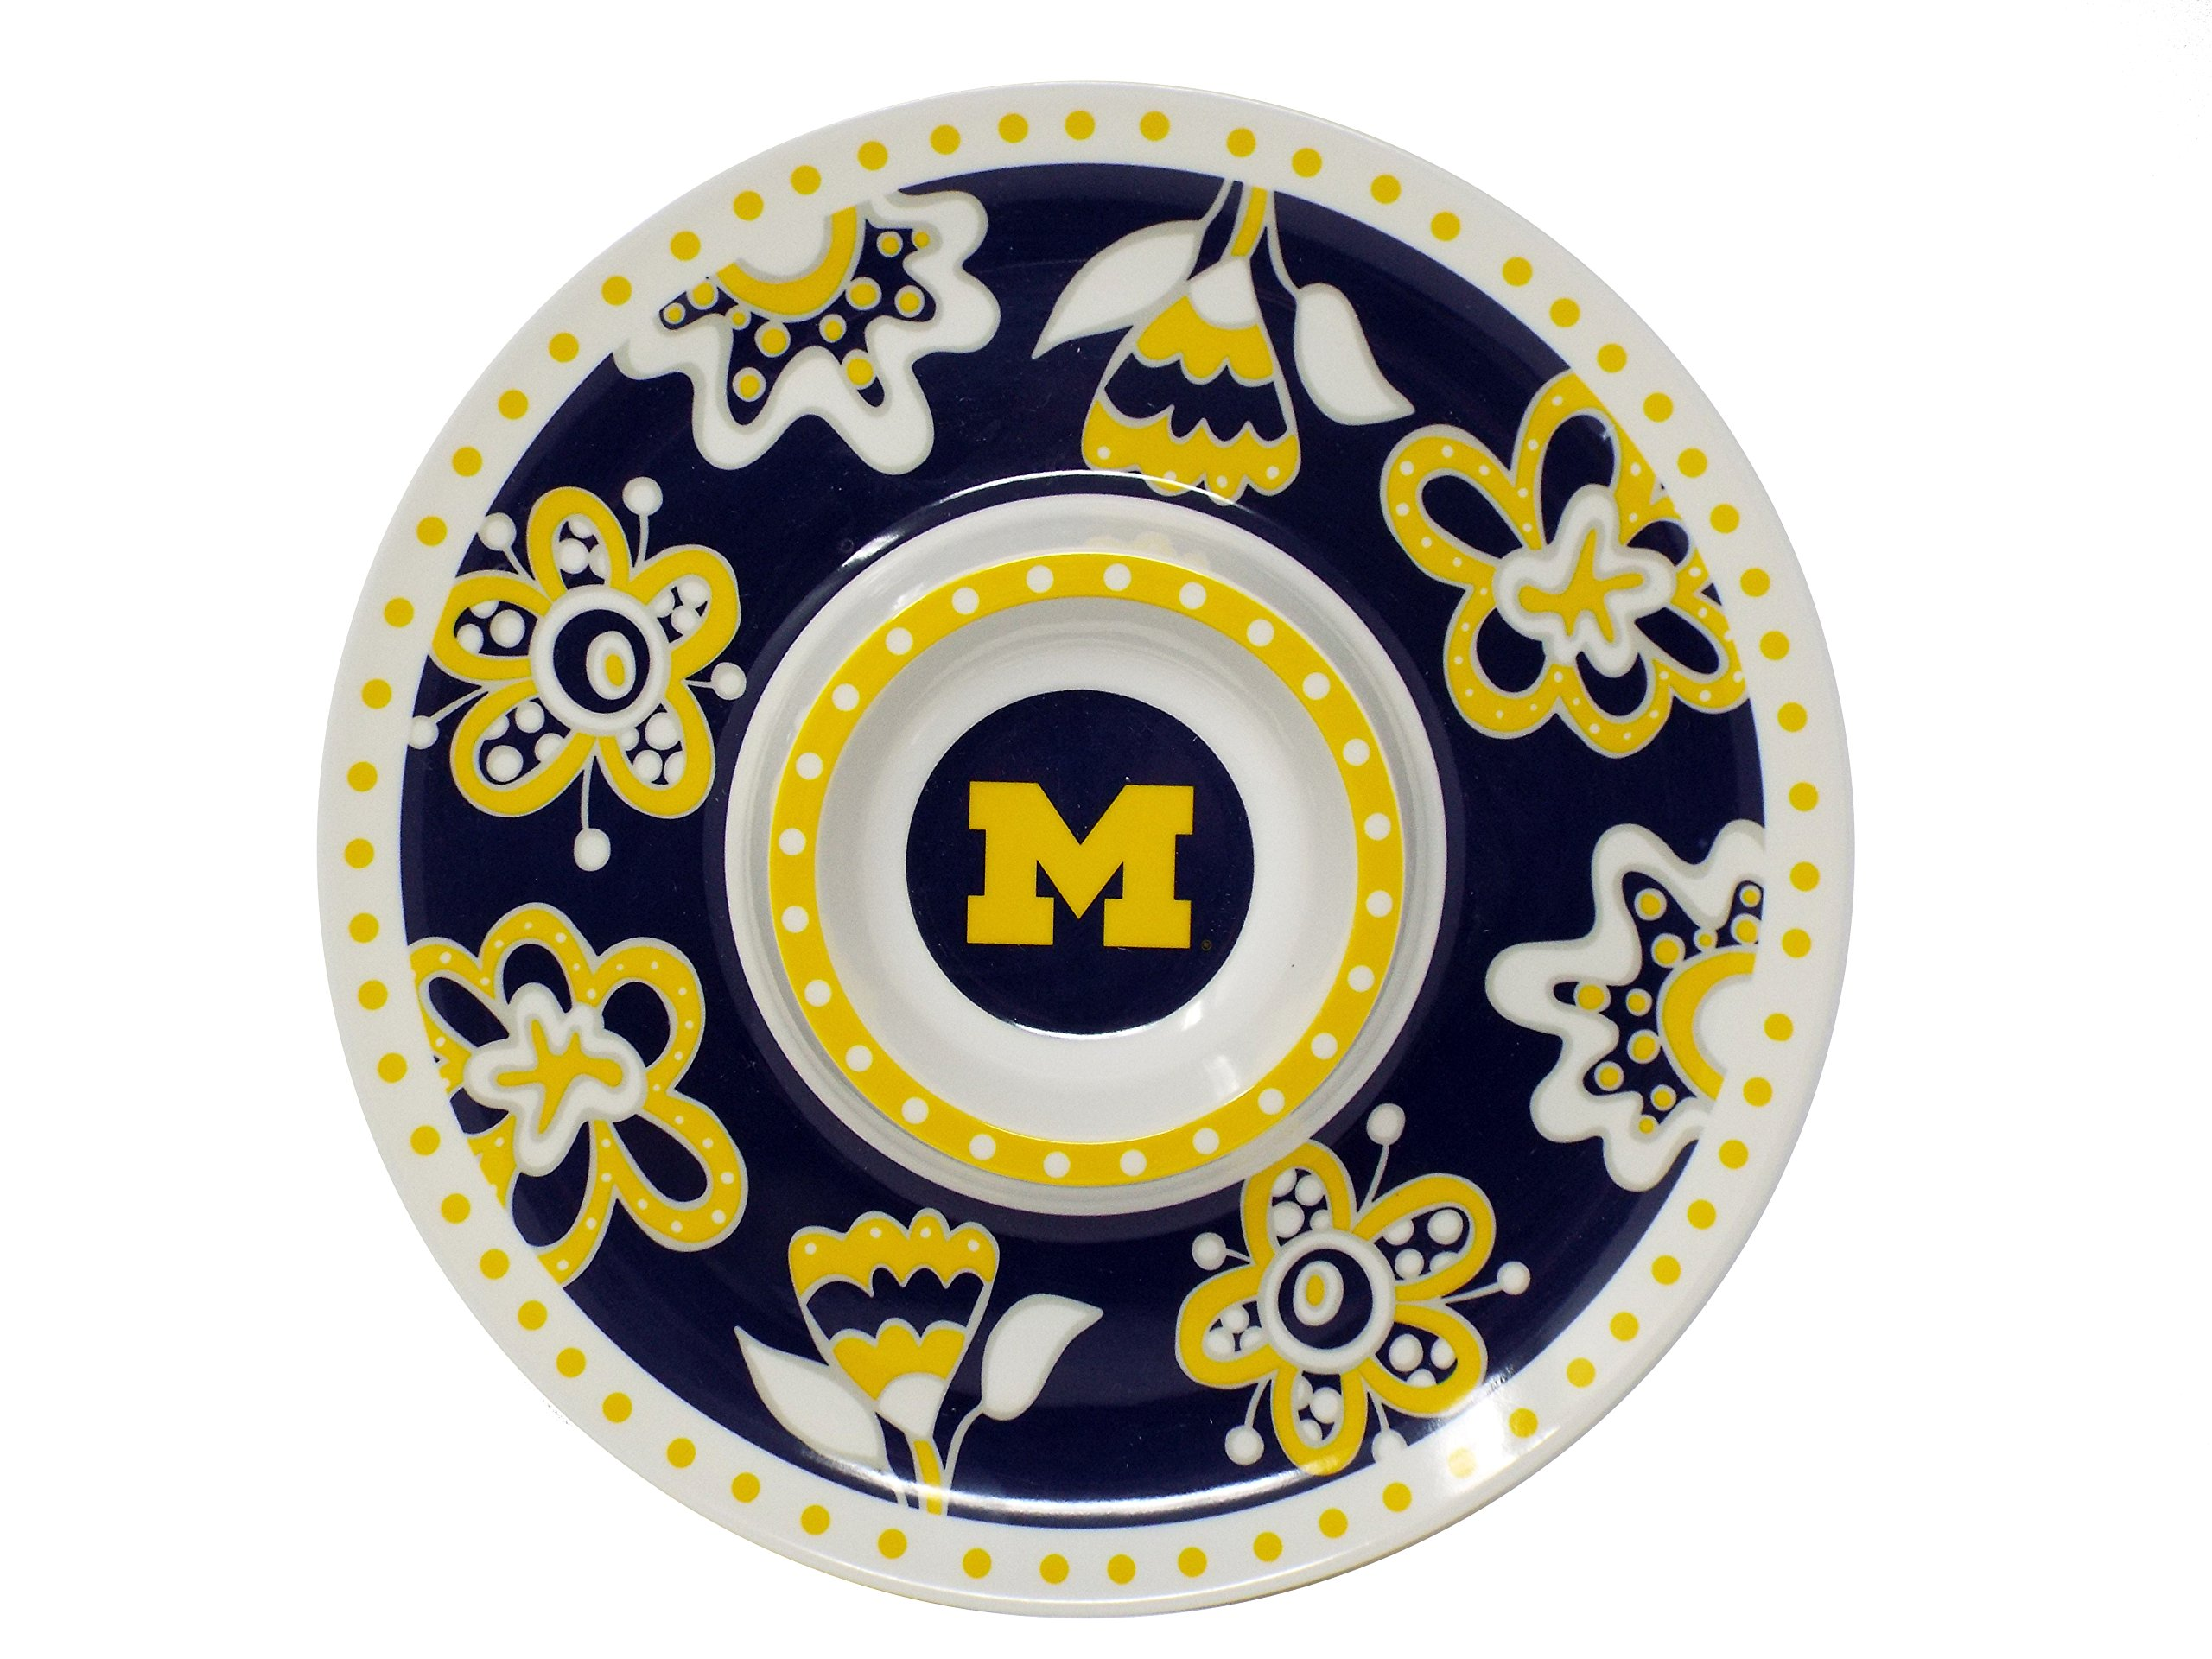 NCAA Melamie Chip and Dip Tray (Michigan Wolverines)